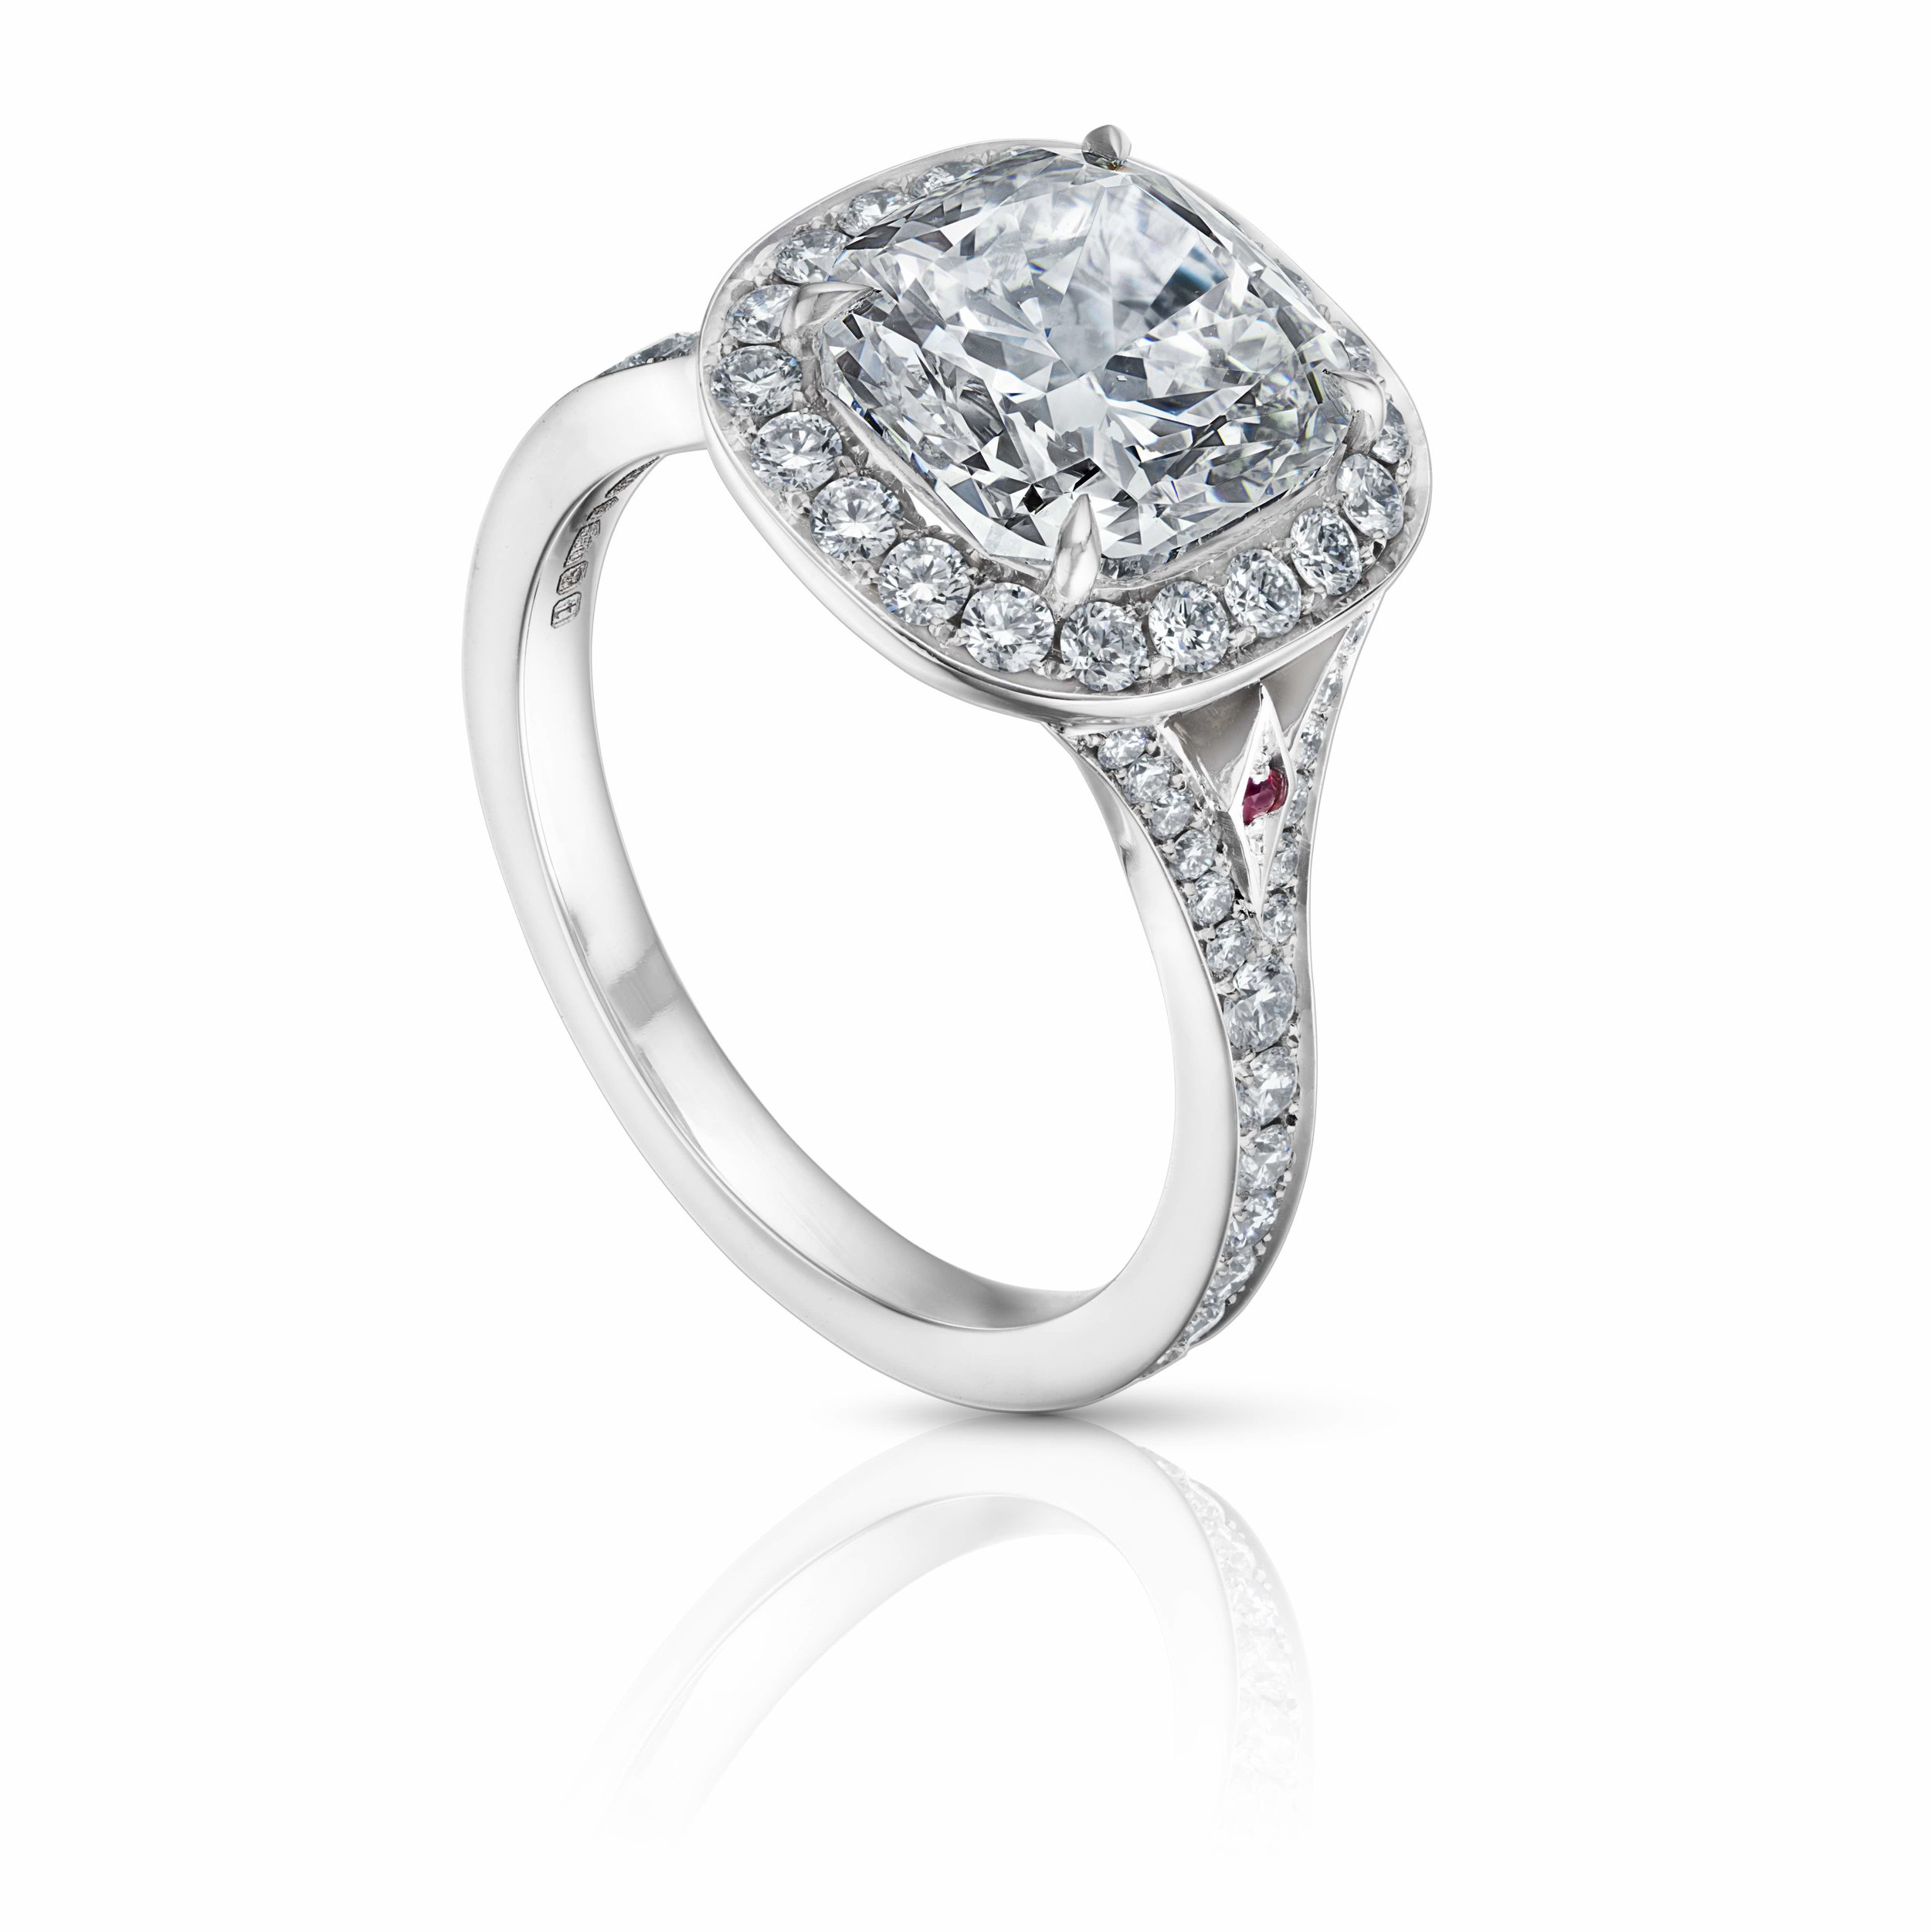 Cushion Cut Diamond Engagement Ring with Rubies and Diamond Halo Setting